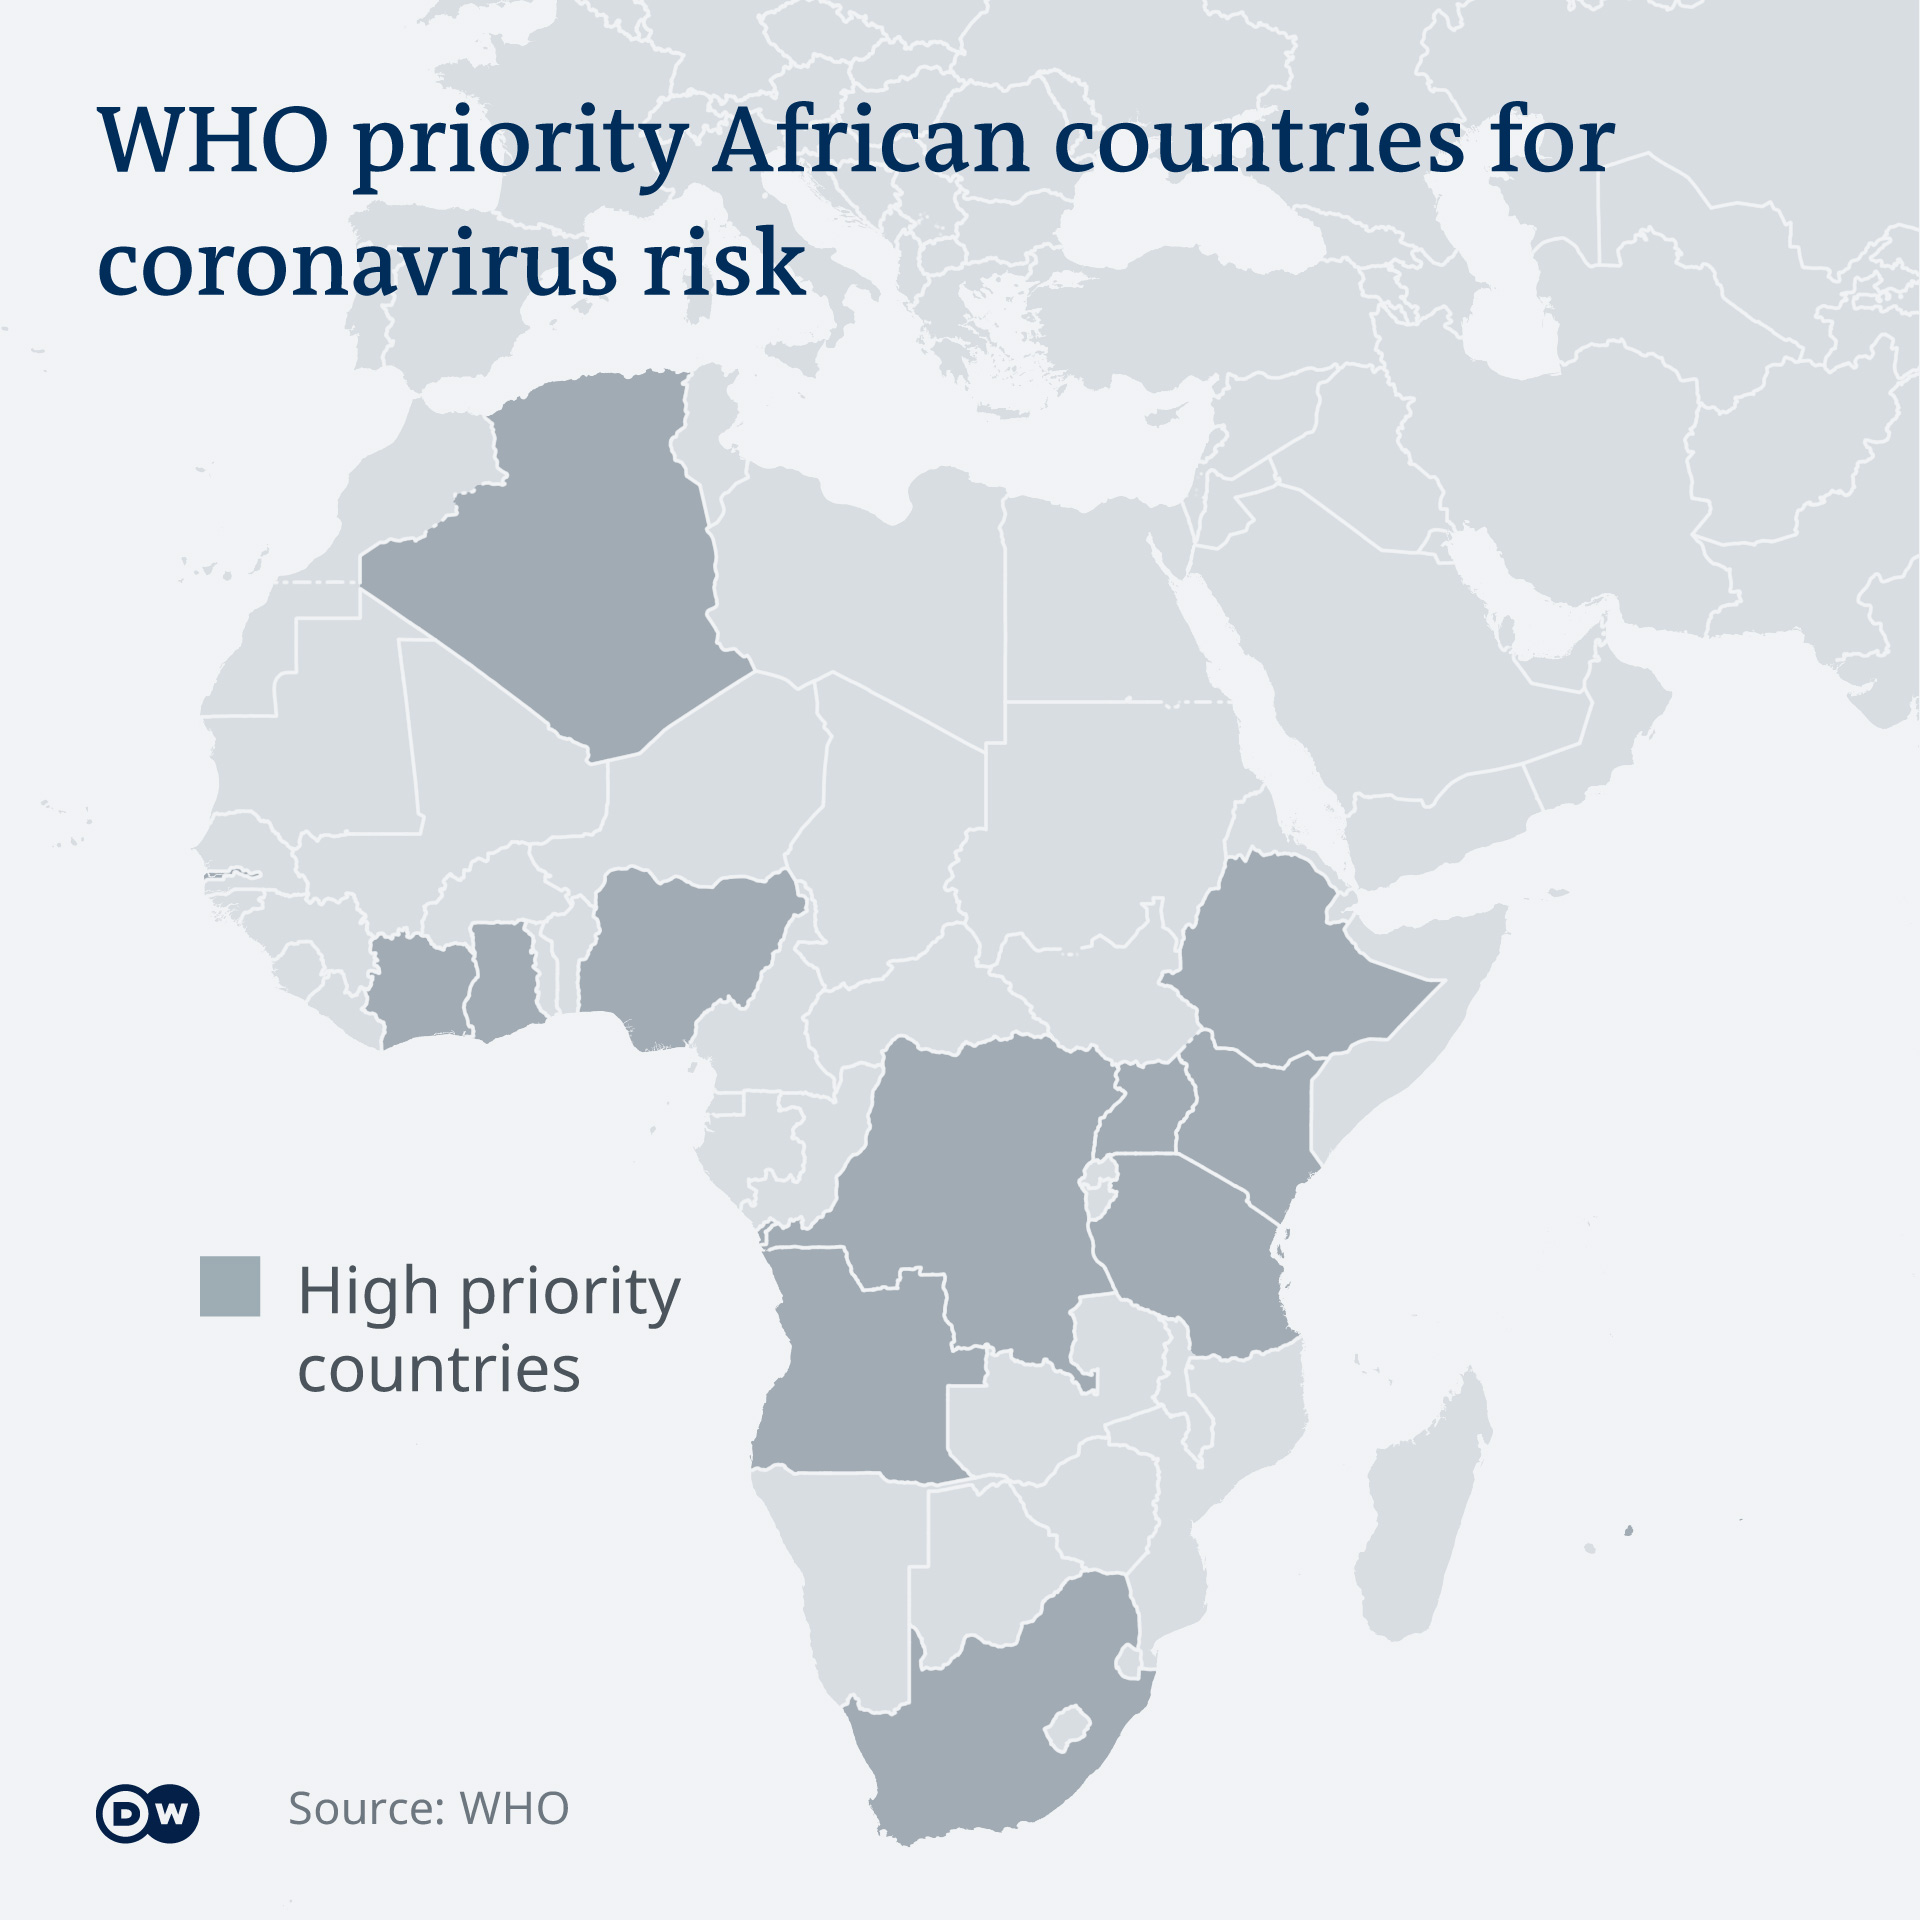 Map showing the 13 African countries prioritized by WHO for coronavirus: Algeria, Angola, Ivory Coast, Democratic Republic of the Congo, Ethiopia, Ghana, Kenya, Mauritius, Nigeria, South Africa, Tanzania, Uganda and Zambia